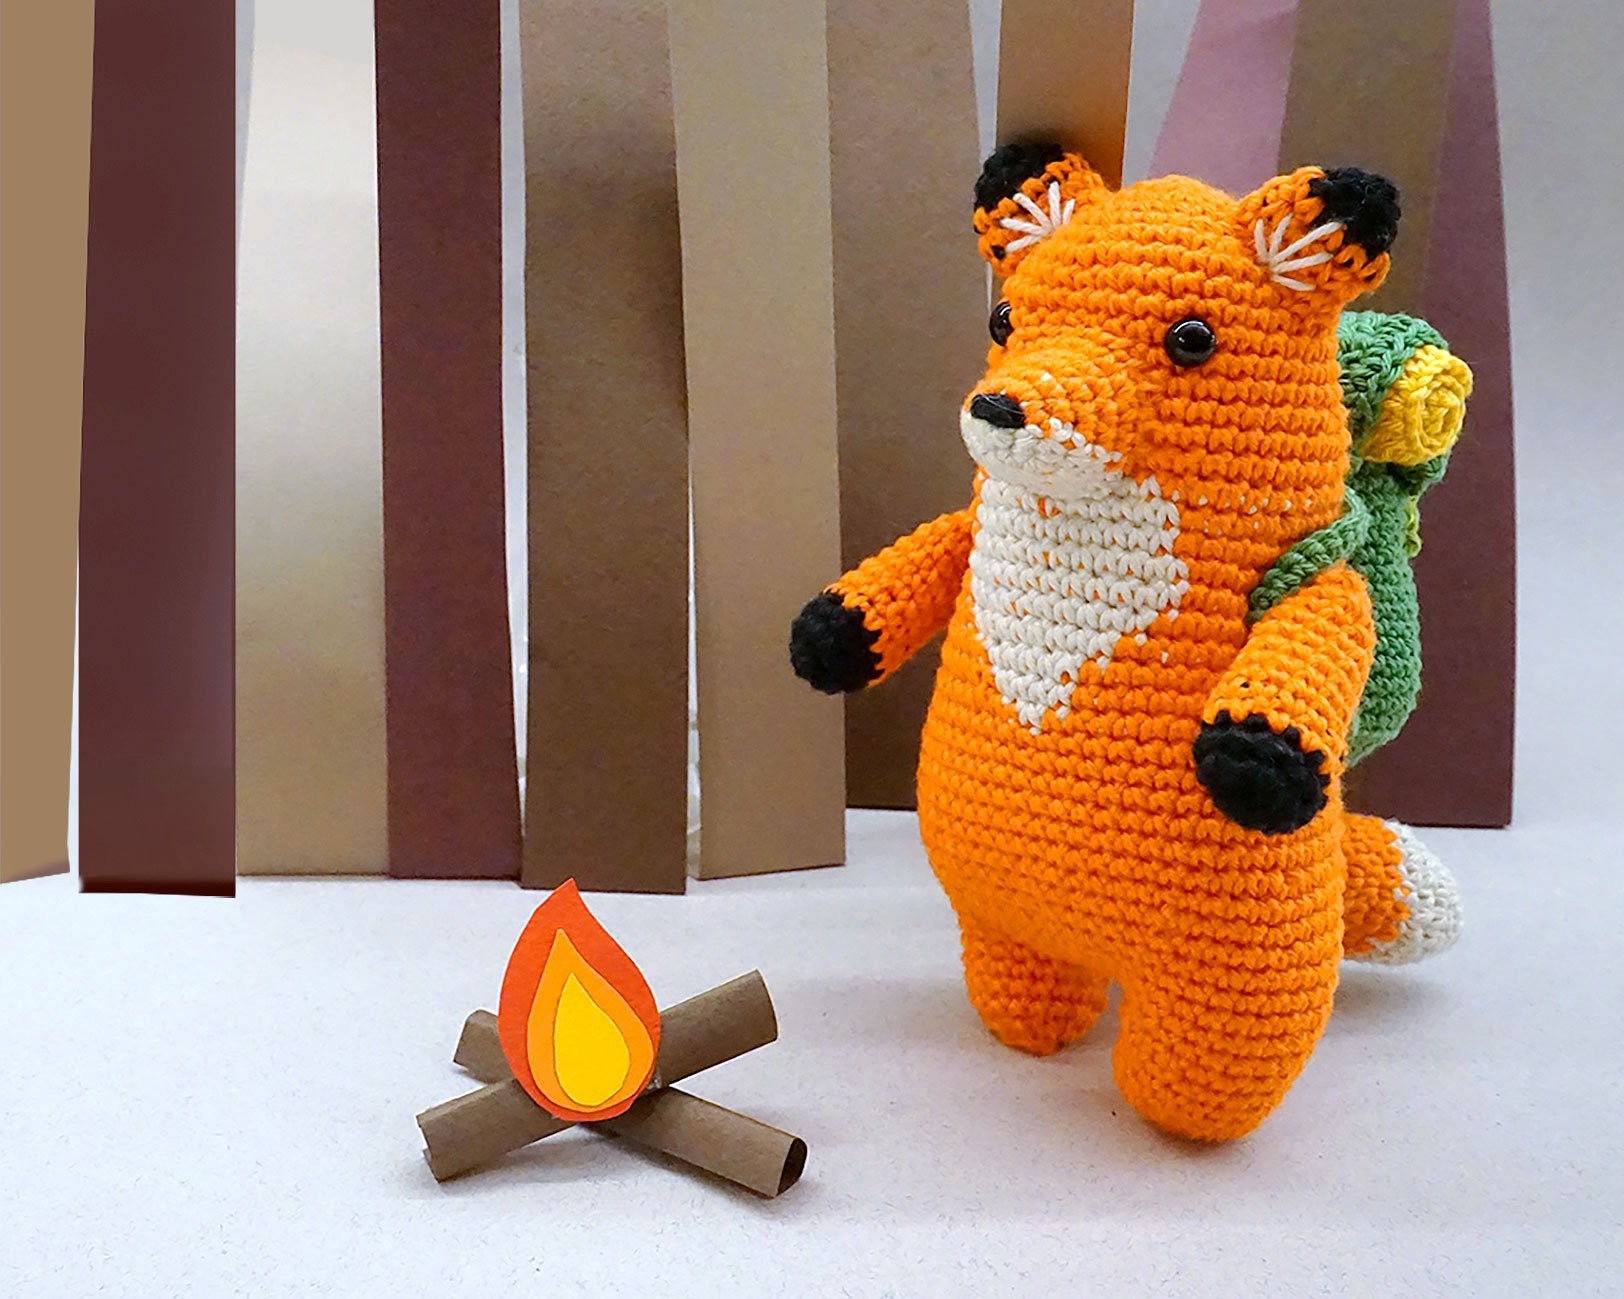 A Wooble, a crocheted fox with a backpack, standing next to a paper fire.